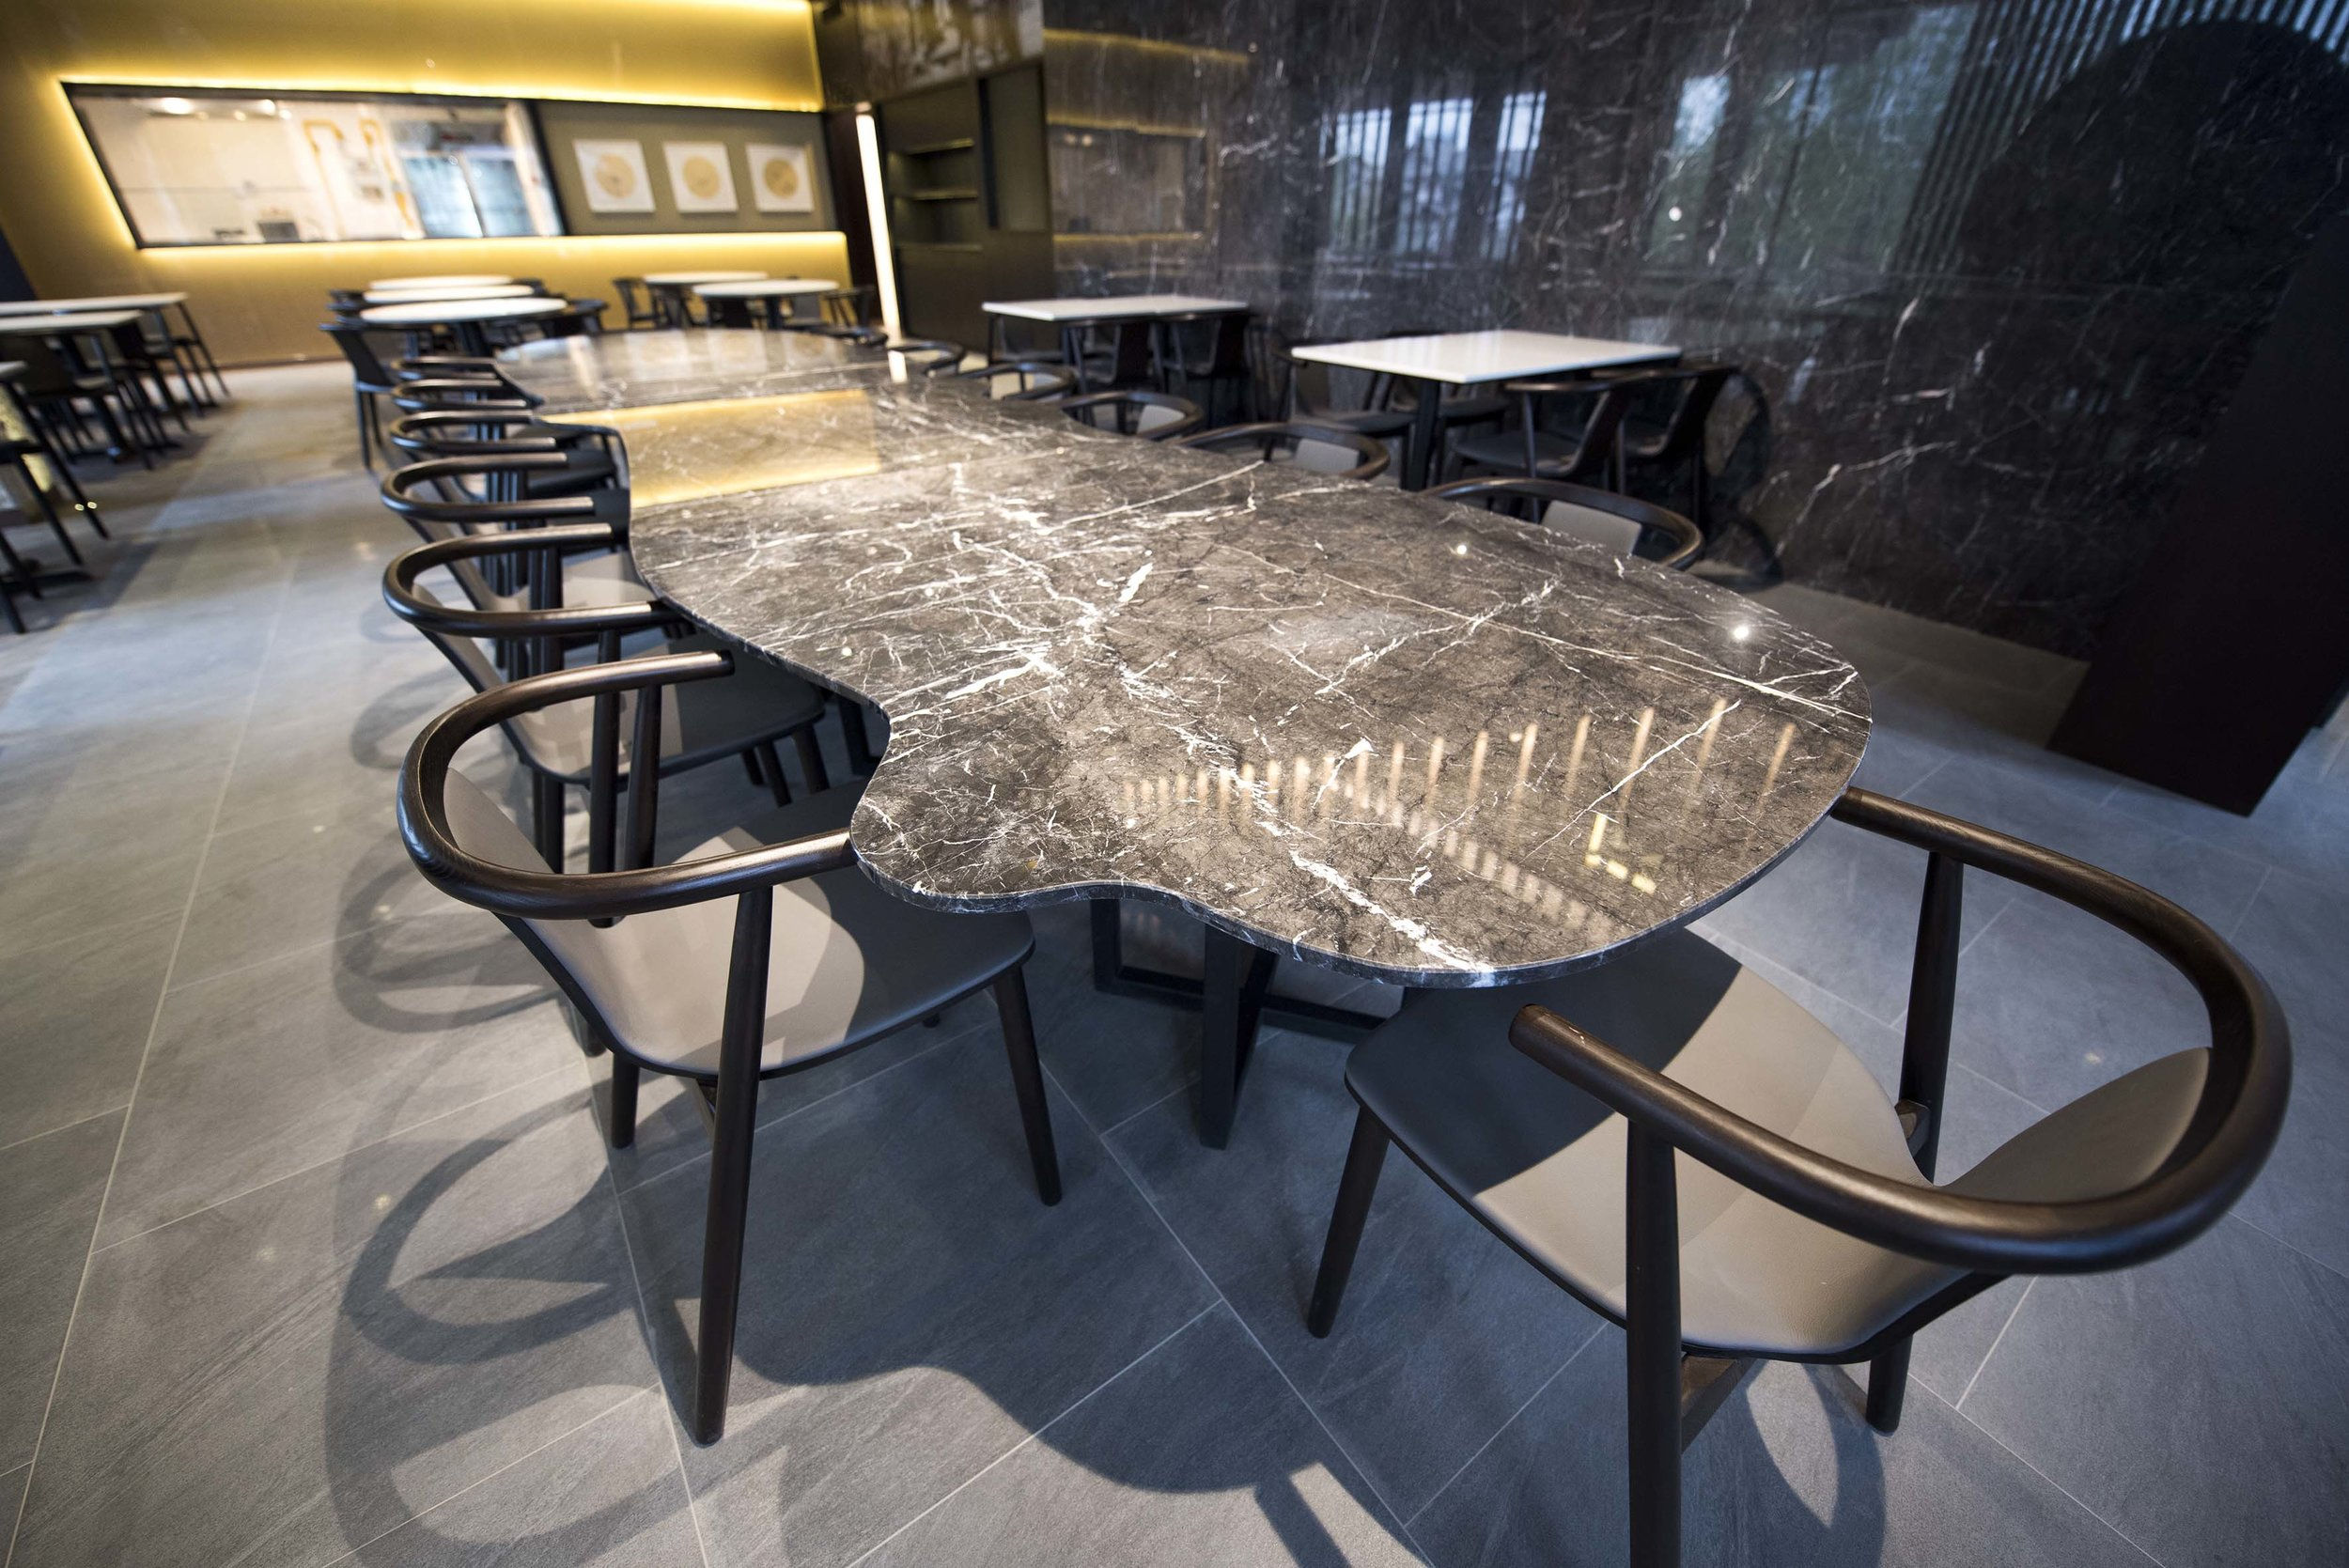 Inspired by traditional Chinese garden rock art, this impressive 4.8m long marble table installation is full of playful curves and appears to be floating. It functions as a dynamic 18 person sharing table for multipurpose events.